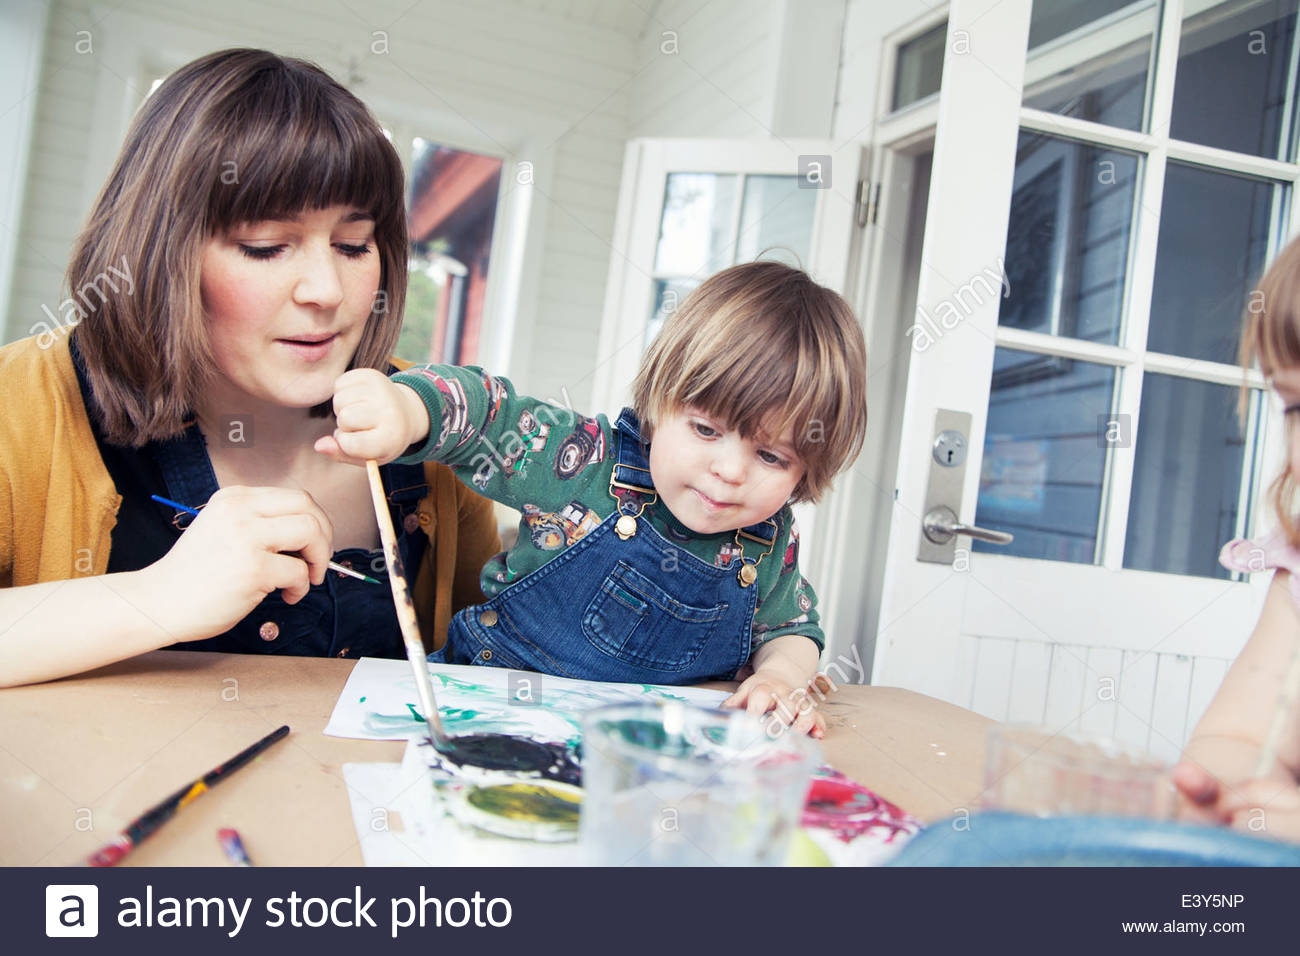 Mother and two children painting in dining room - Stock Image